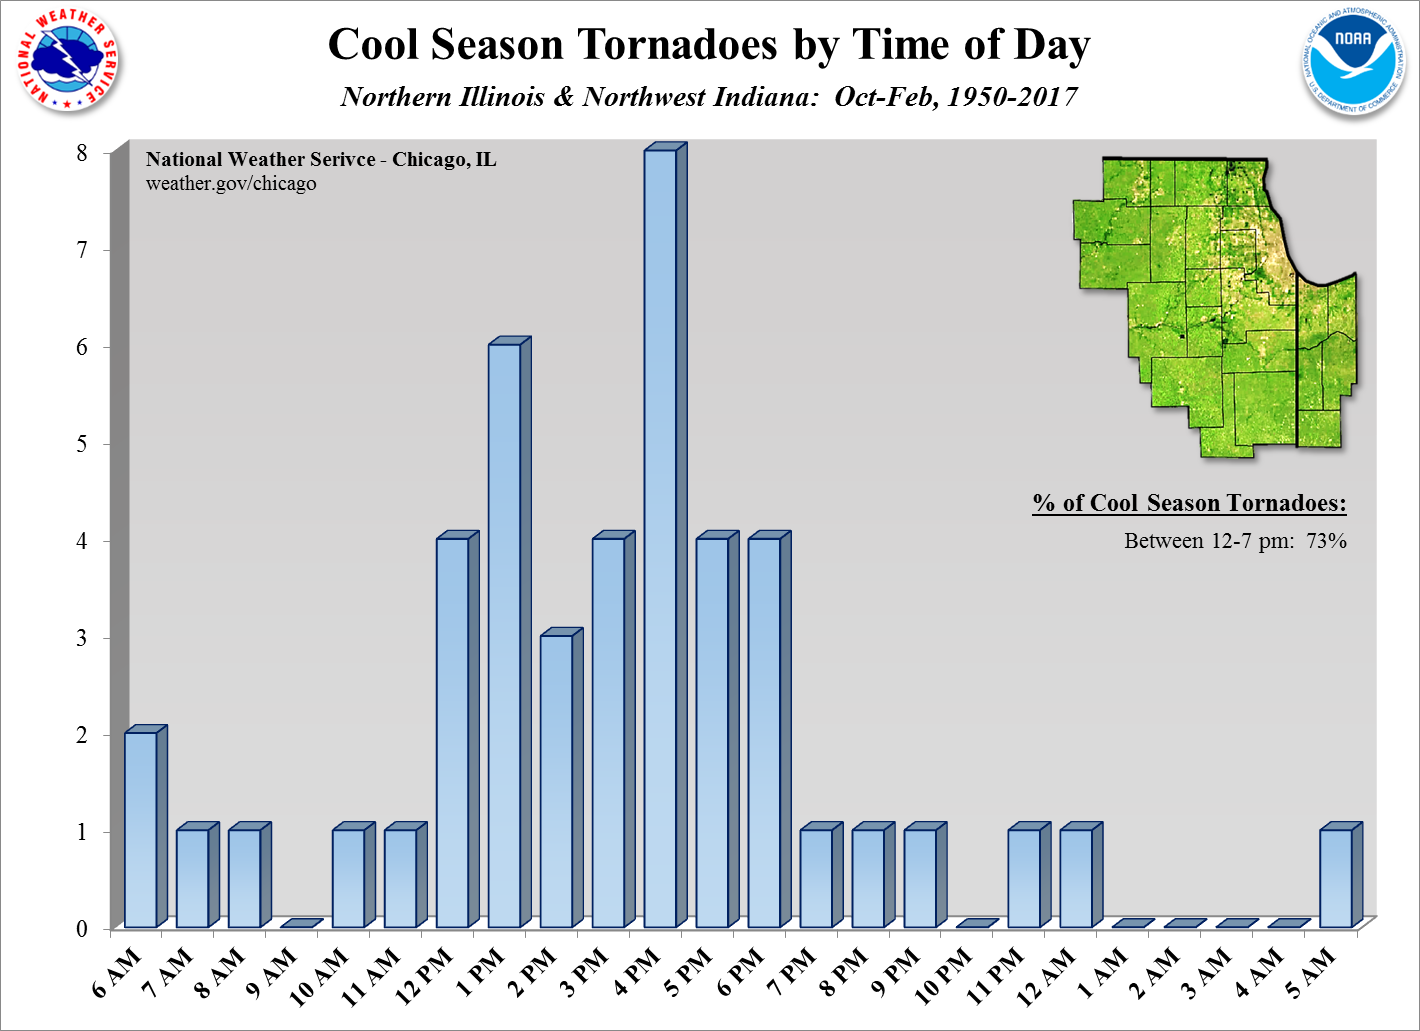 Tornadoes by Time of Day in the Cool Season